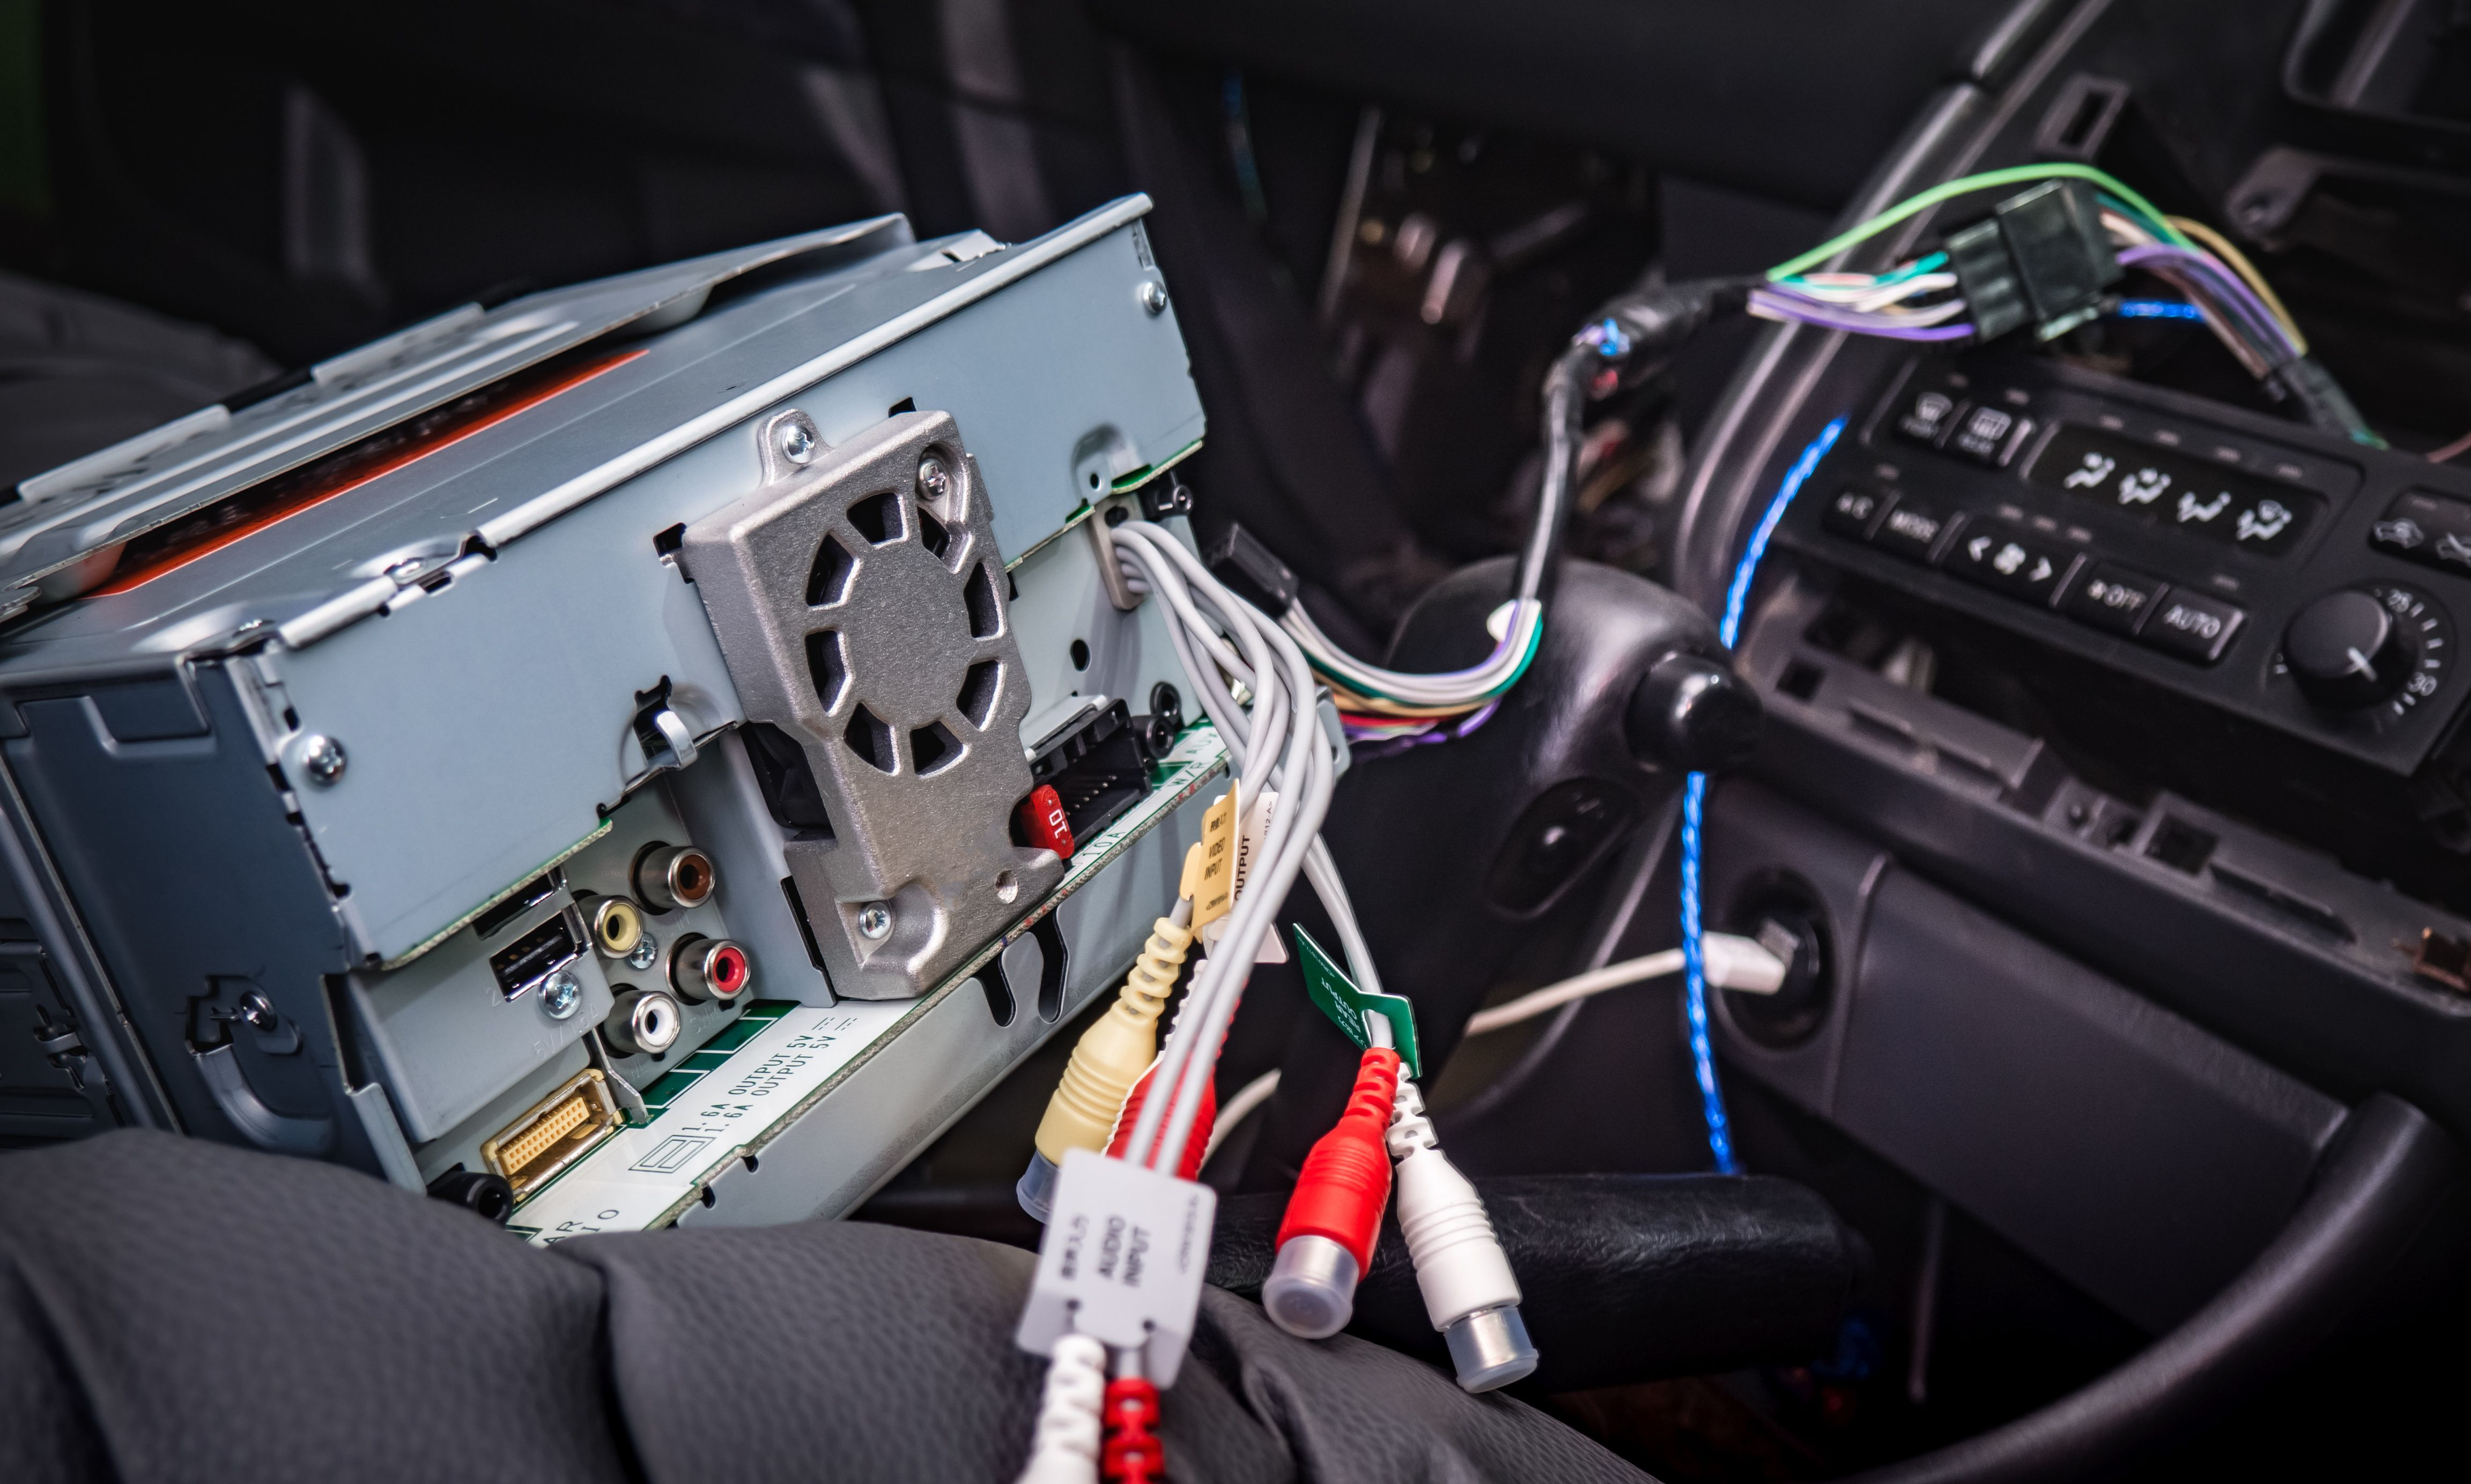 Ground Wires and Install Your Own Car Stereo steering wheel radio controls wiring diagram LiveAbout